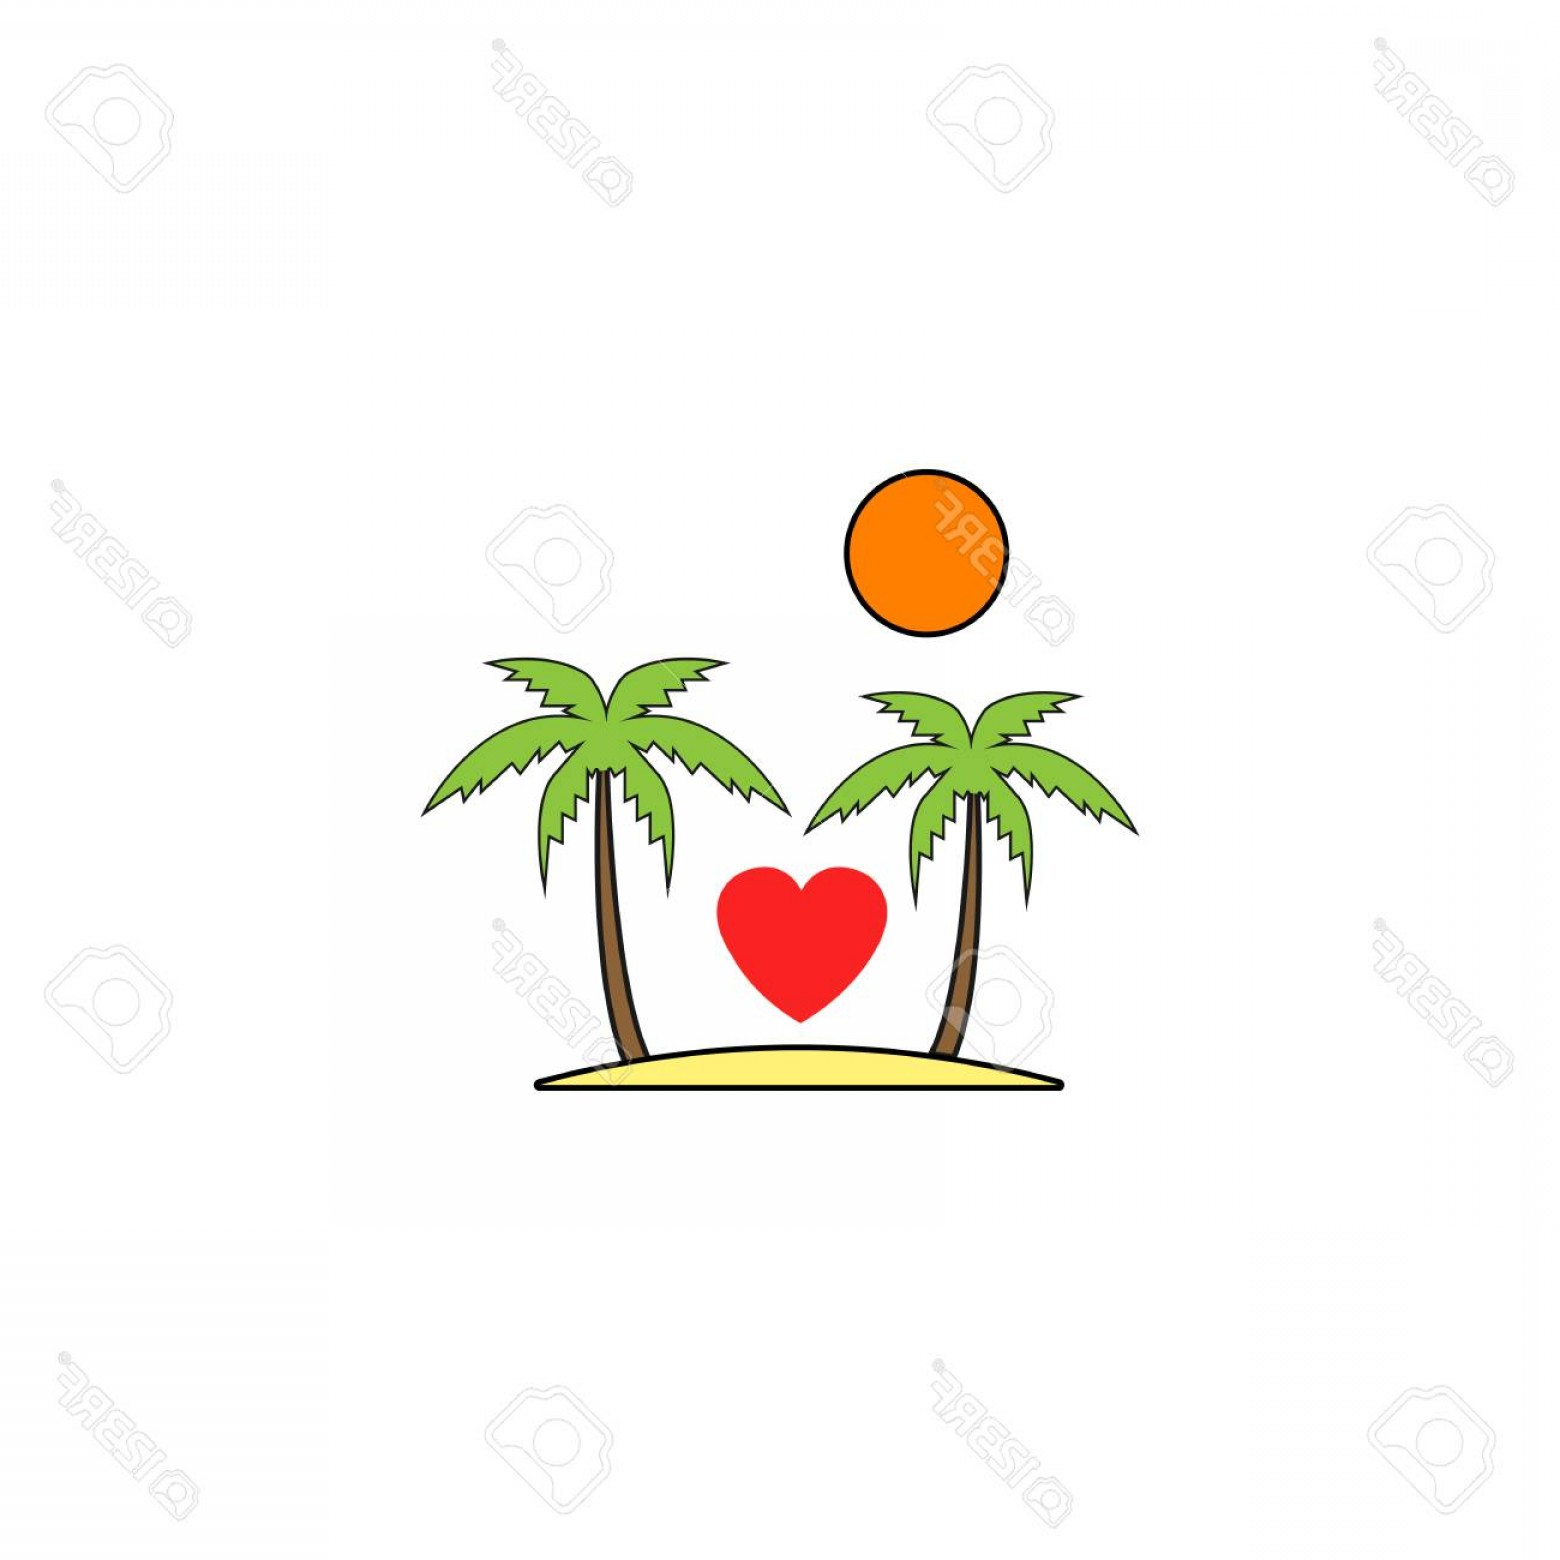 Solid Heart Vector Drawing: Photostock Vector Tour In Valentine S Day Solid Icon Travel And Island With Heart Love Concept Vector Graphics A Color